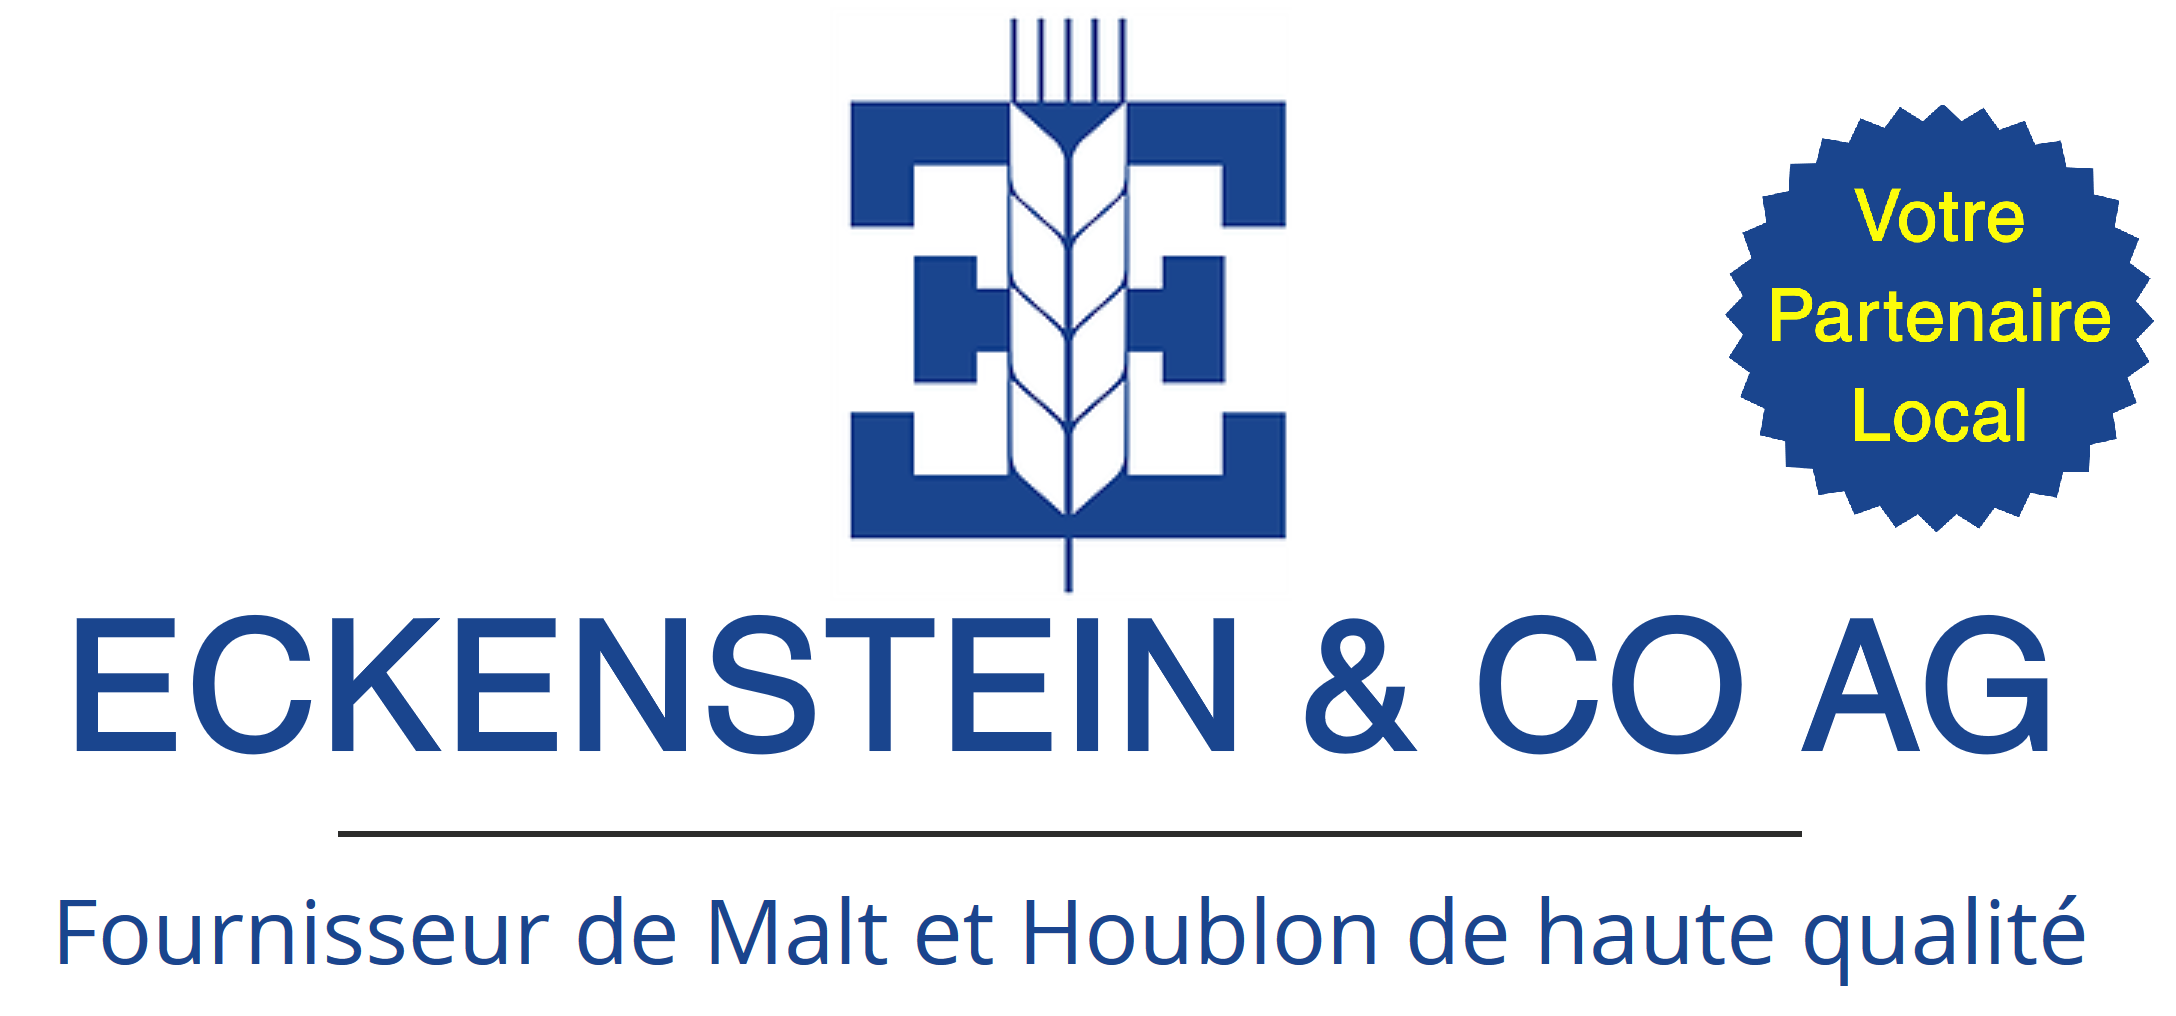 MALT & HOUBLON - ECKENSTEIN & CO AG